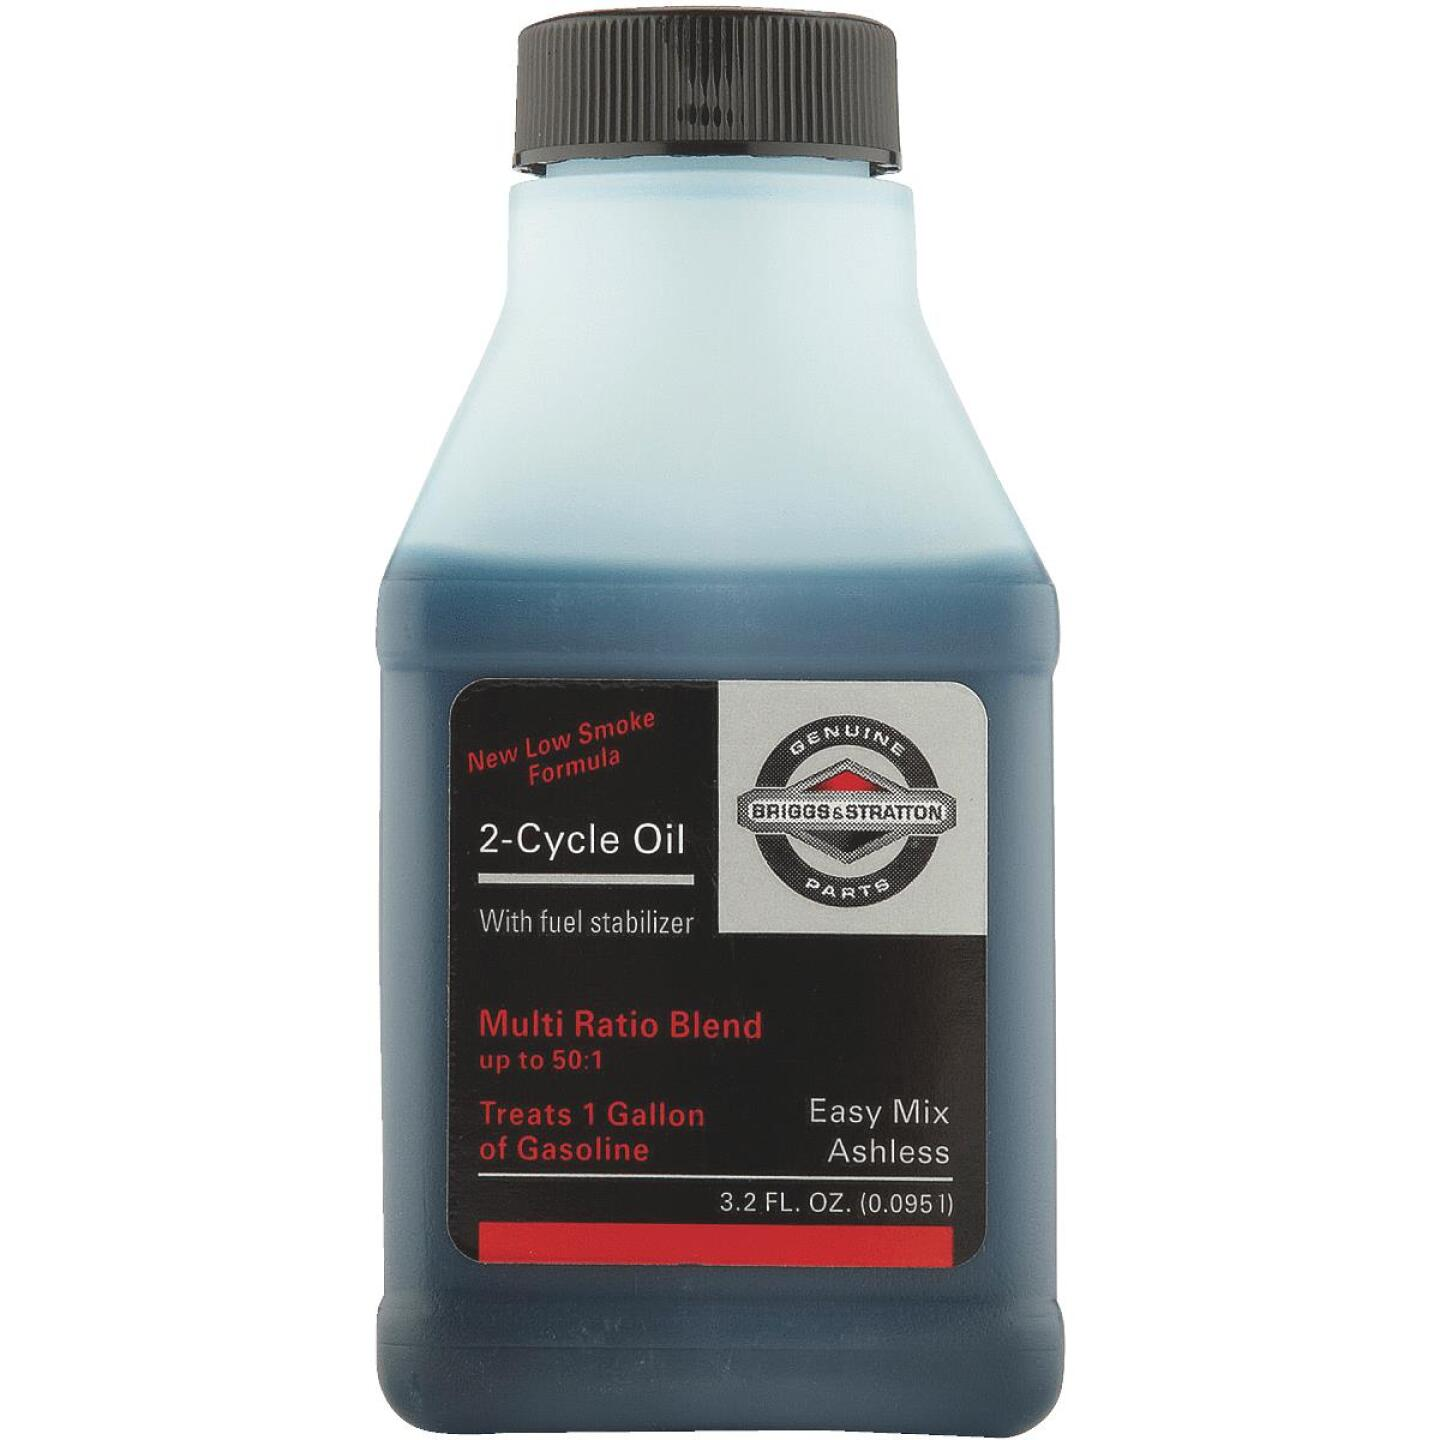 Briggs & Stratton 3.2 Oz. Air Cooled 2-Cycle Motor Oil Image 2